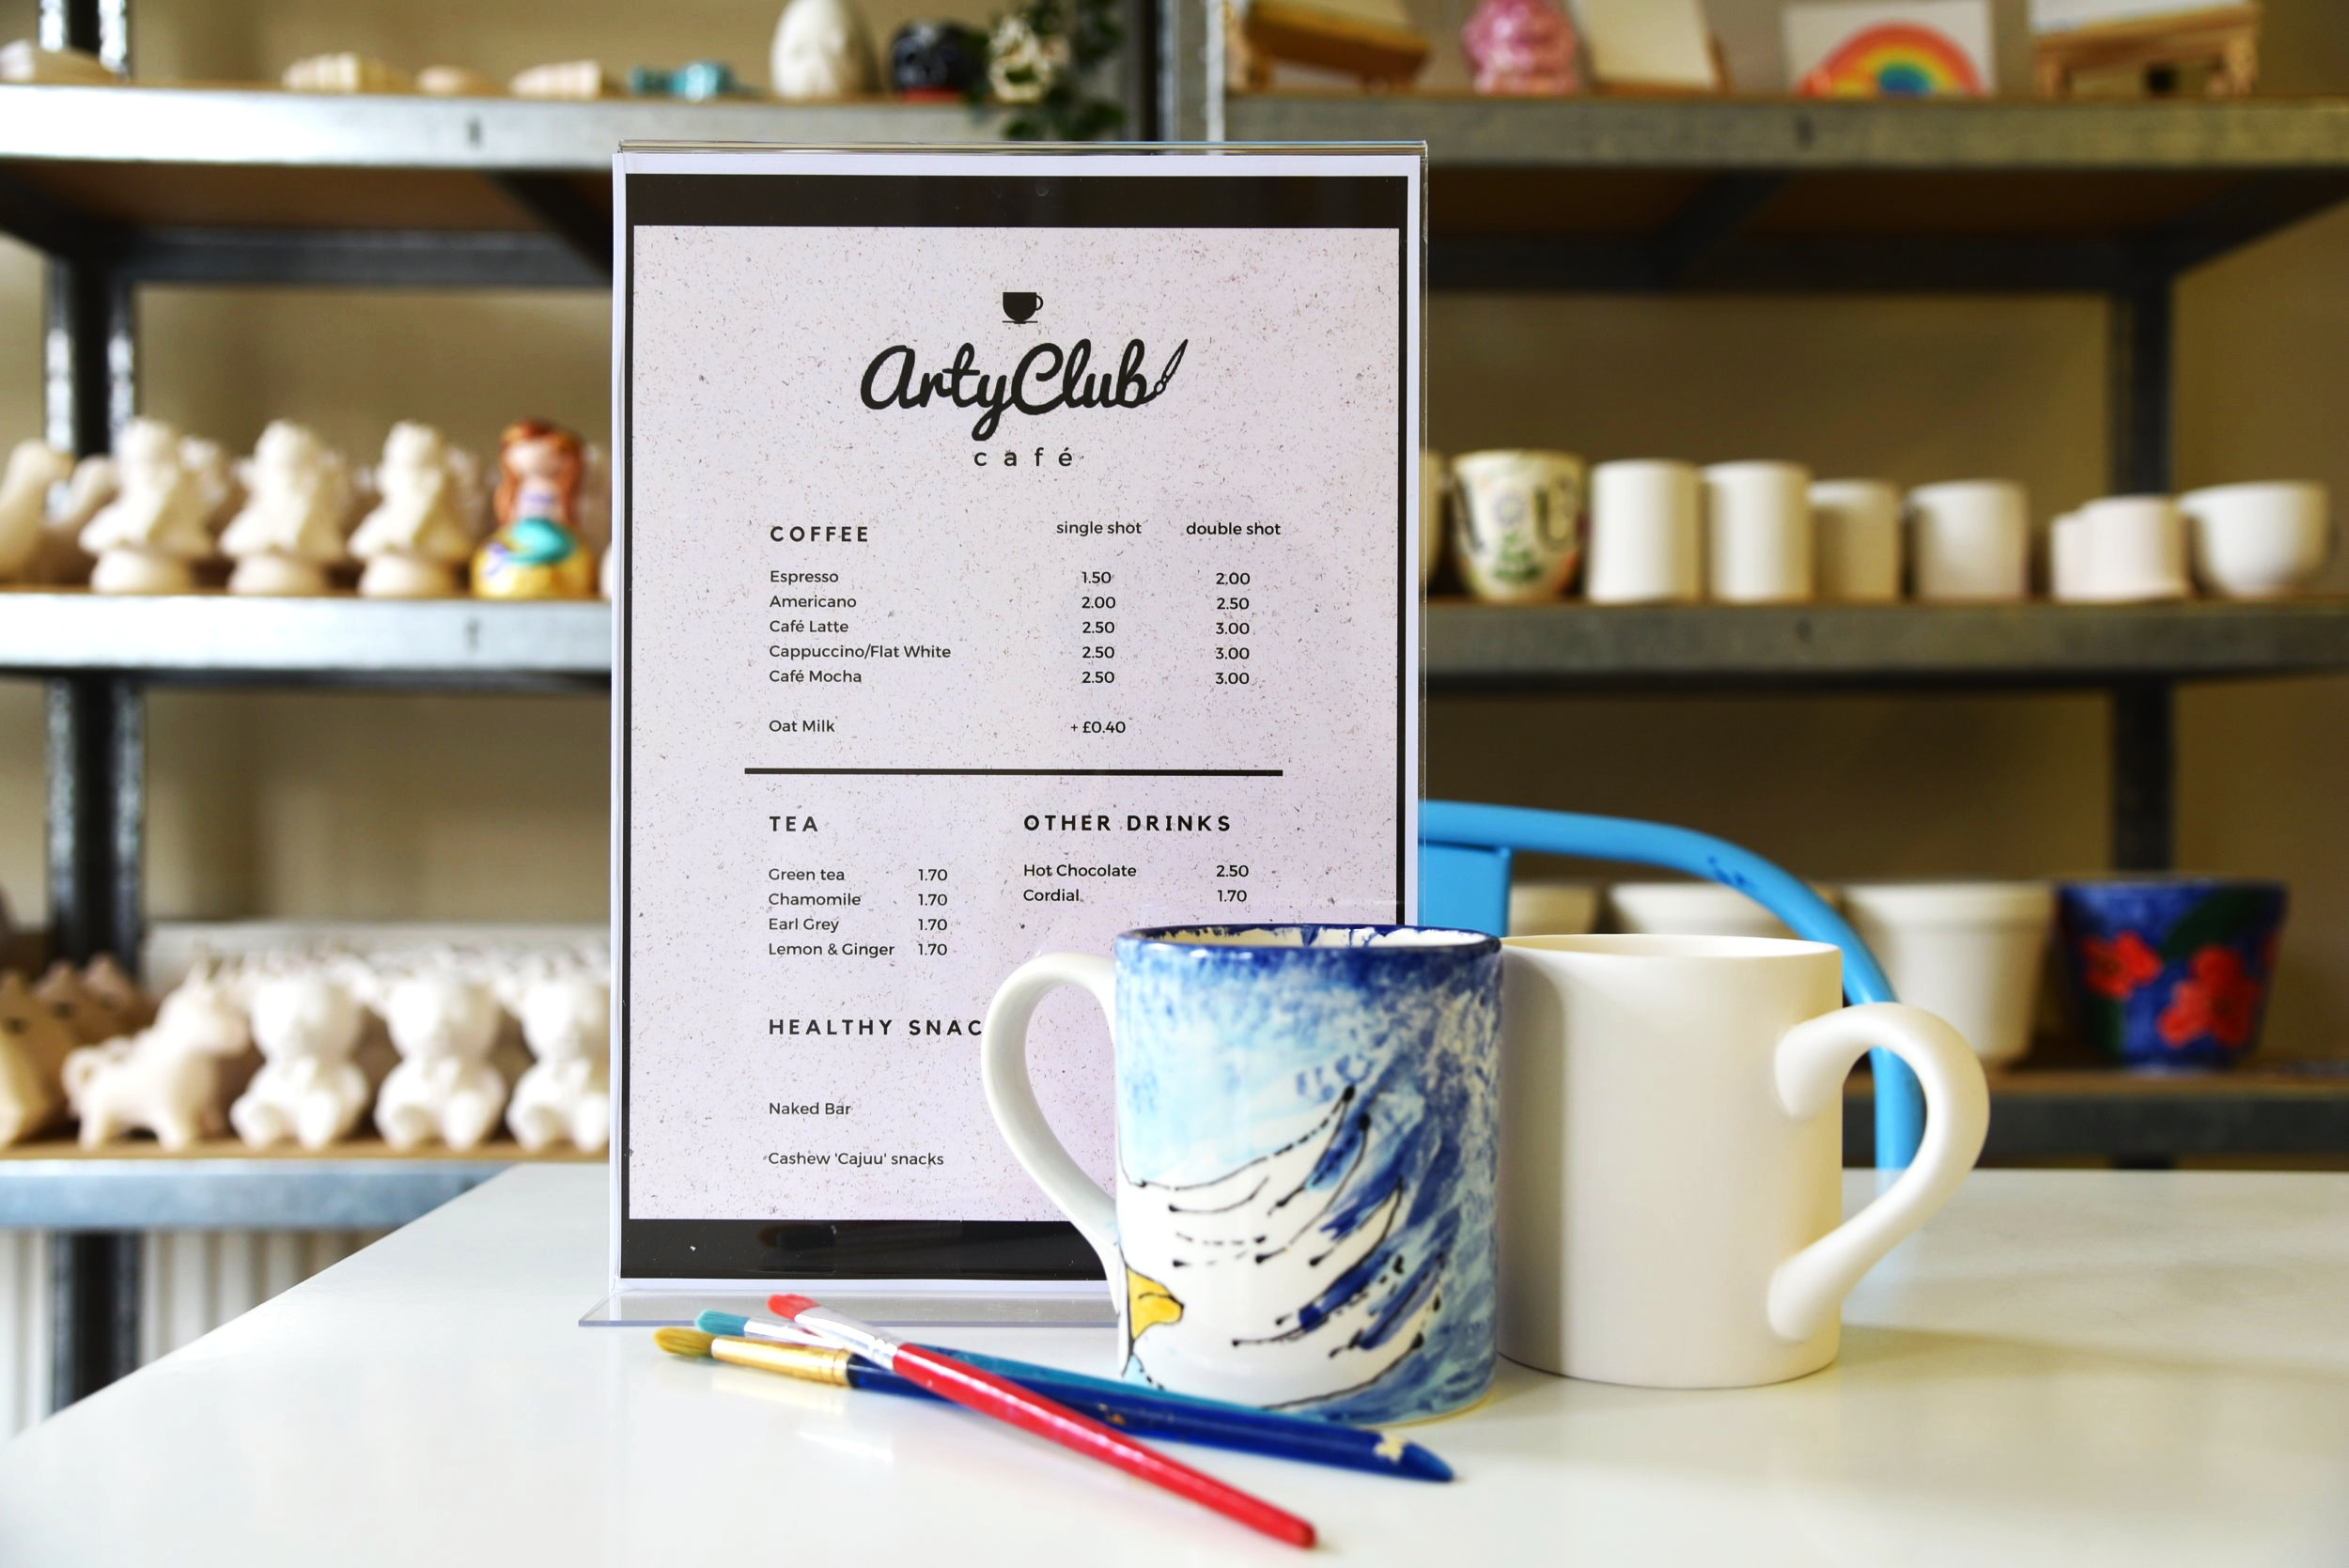 Café - We serve great coffee here at Arty Club. Our barista can make you a fine Cappuccino, Americano or Hot chocolate for the little one. We also serve tea, cordial and sell different kinds of snacks.